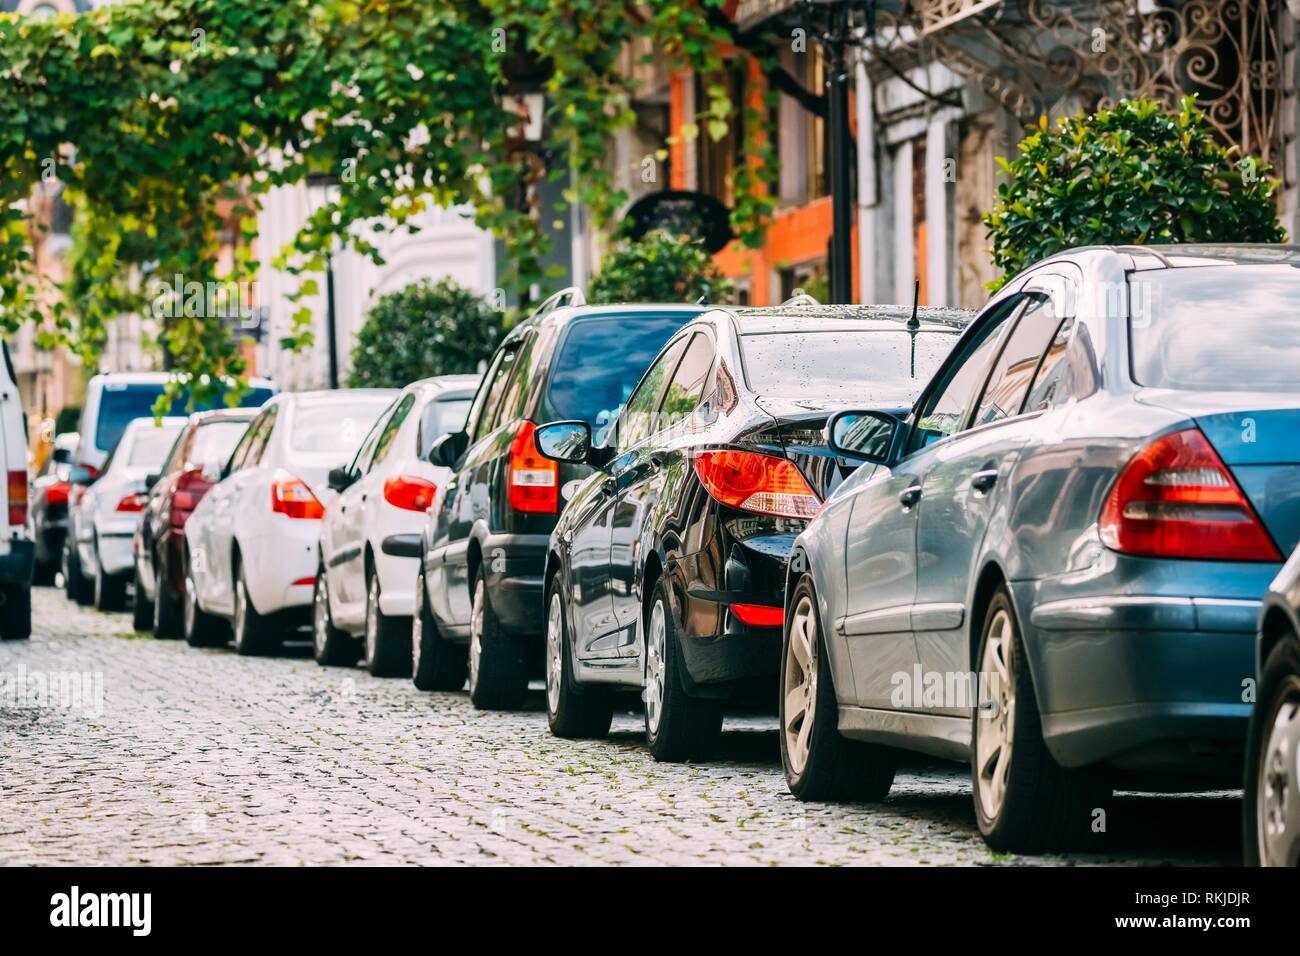 Many Cars Parked On Street In European City In Sunny Summer Day. Row Of City Cars. - Stock Photo